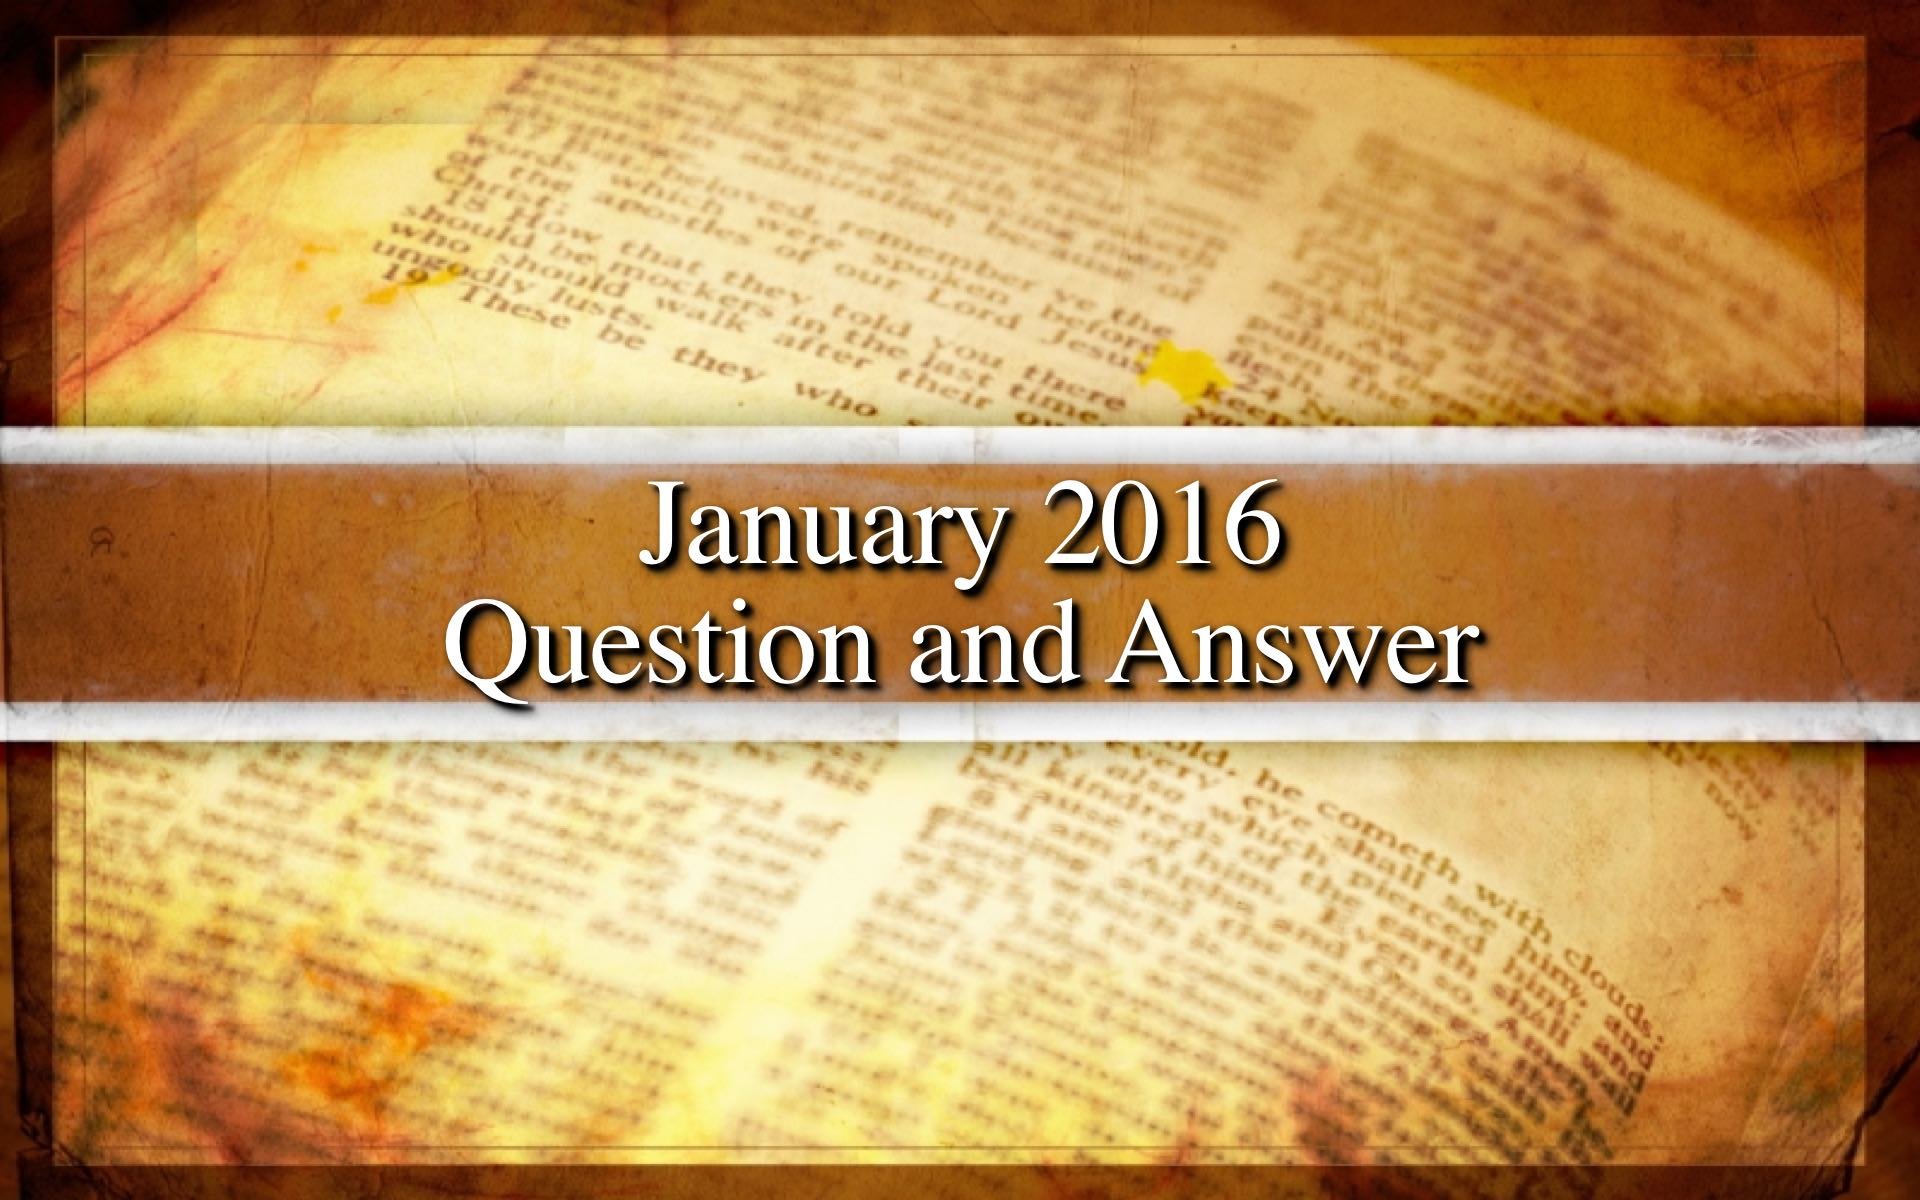 January 2016 Question and Answer